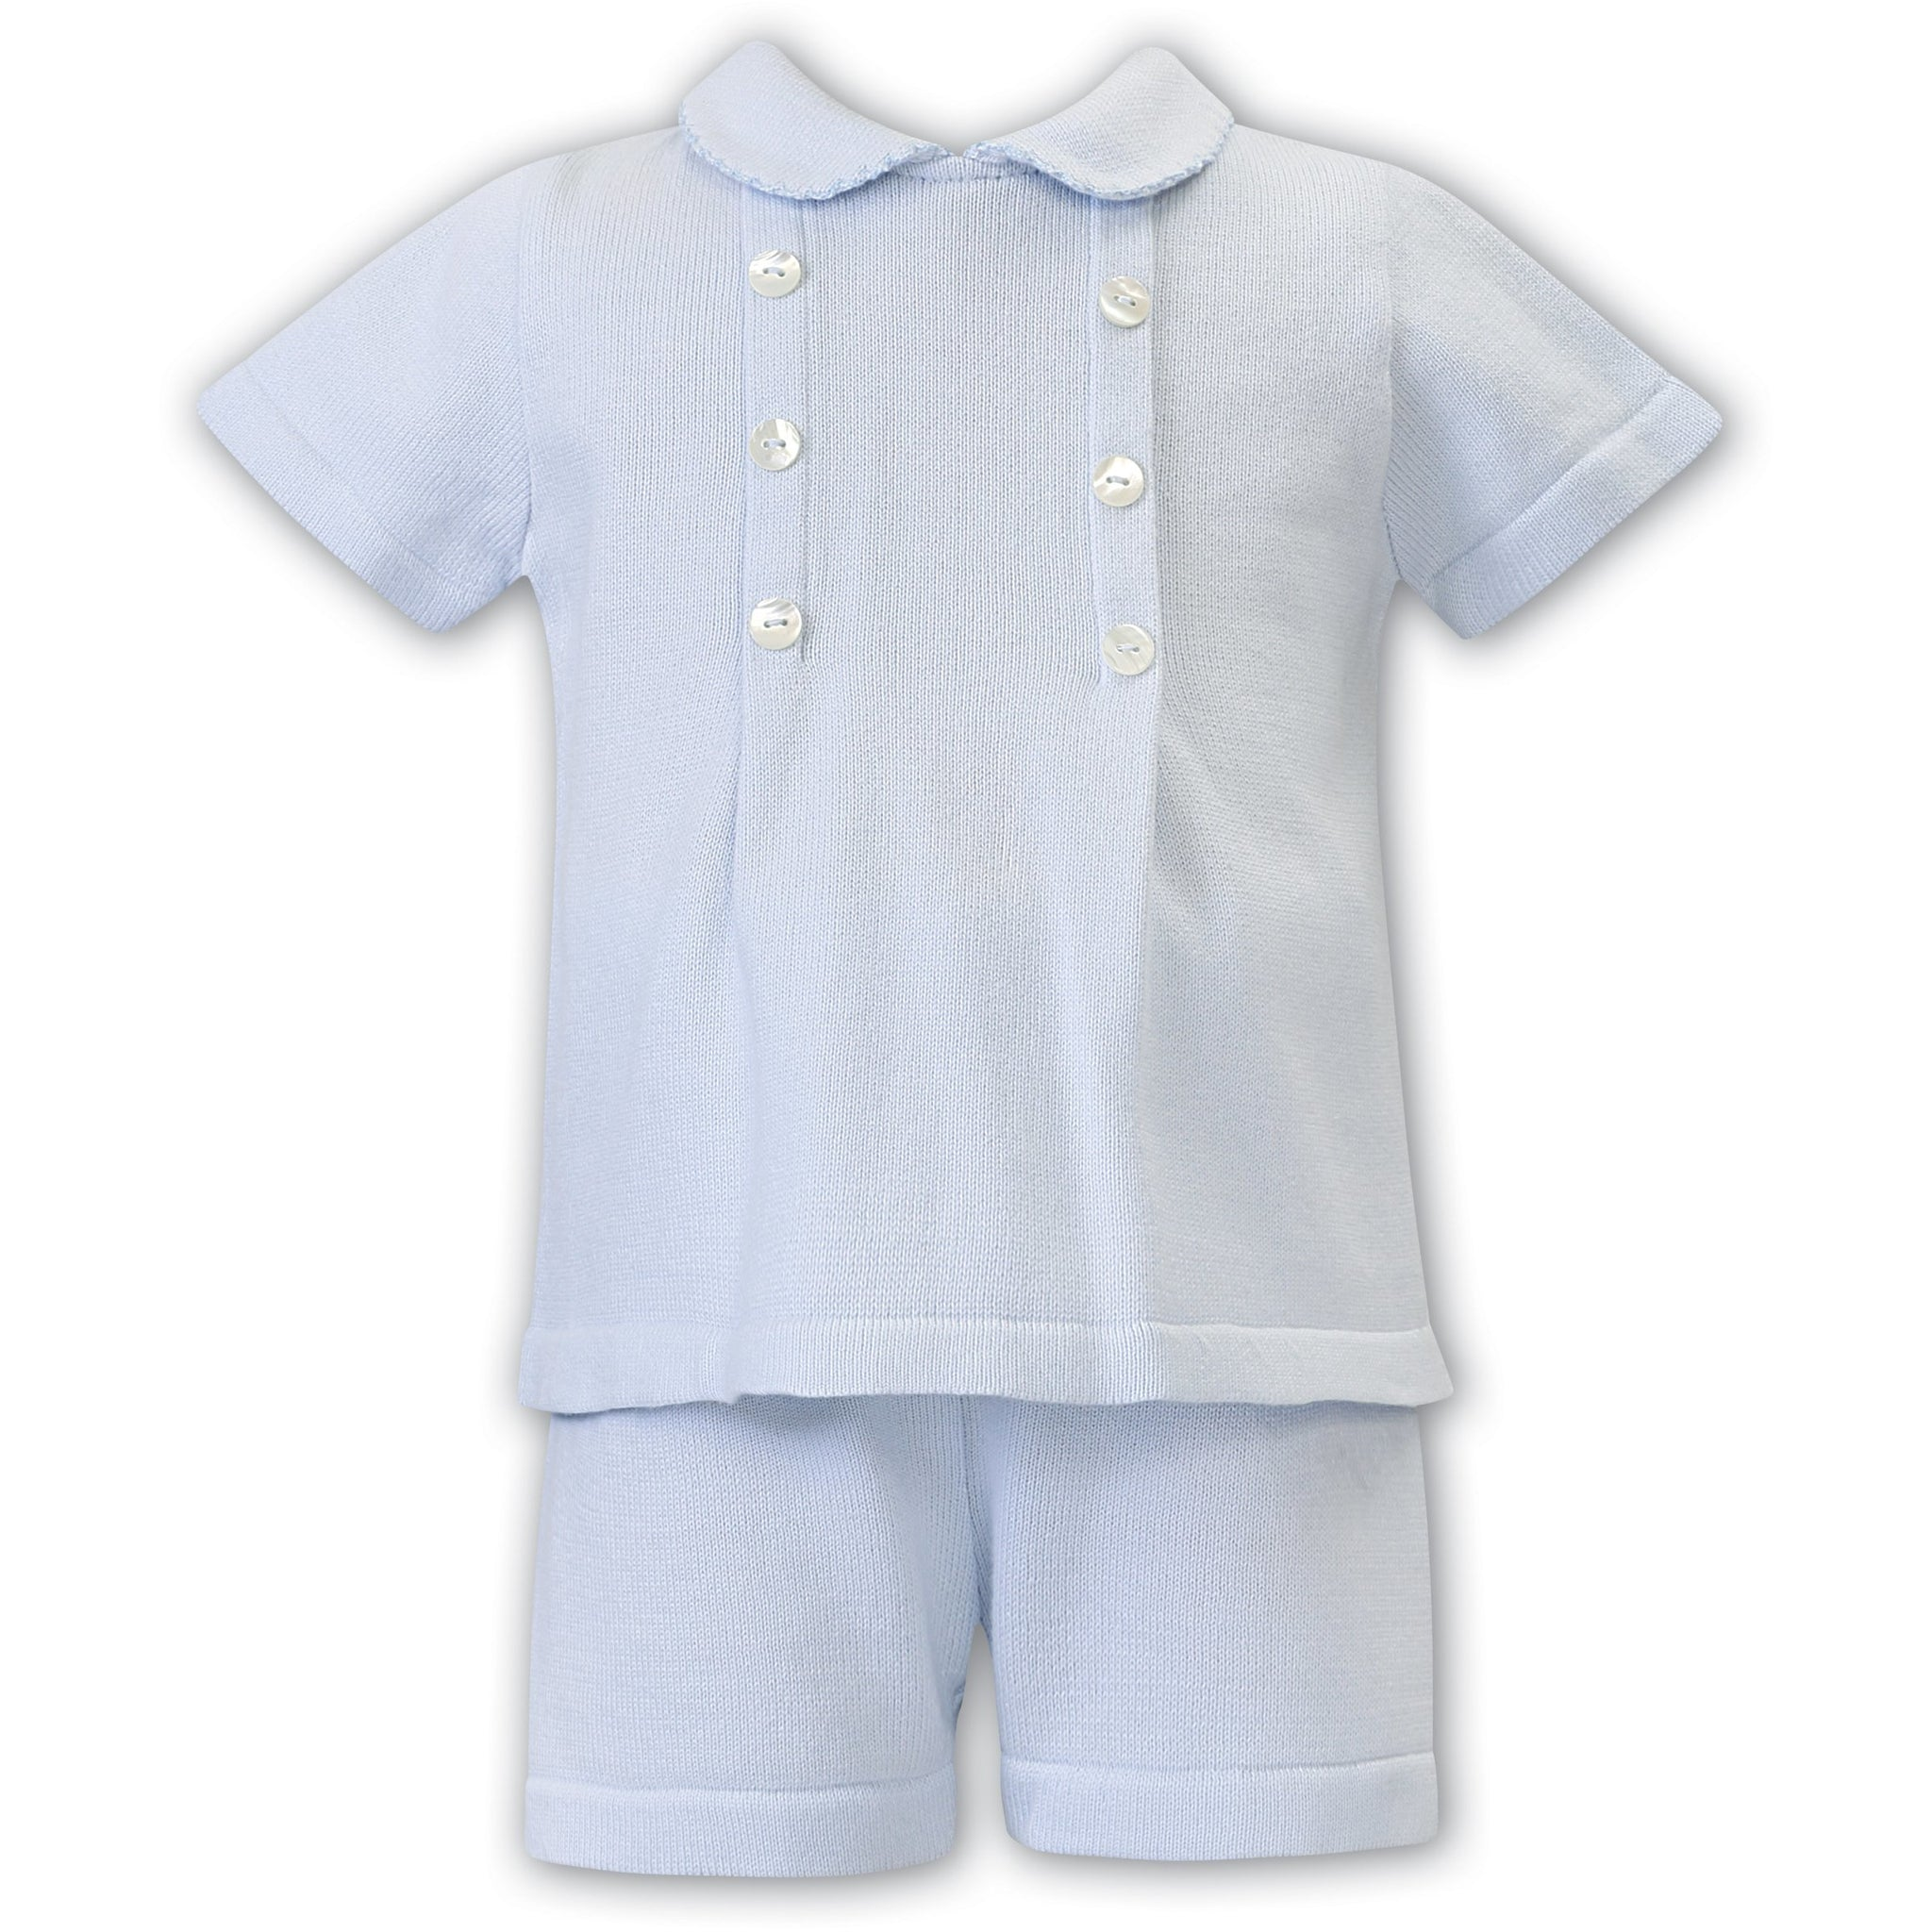 2 Pc Blue Knit Boys Set